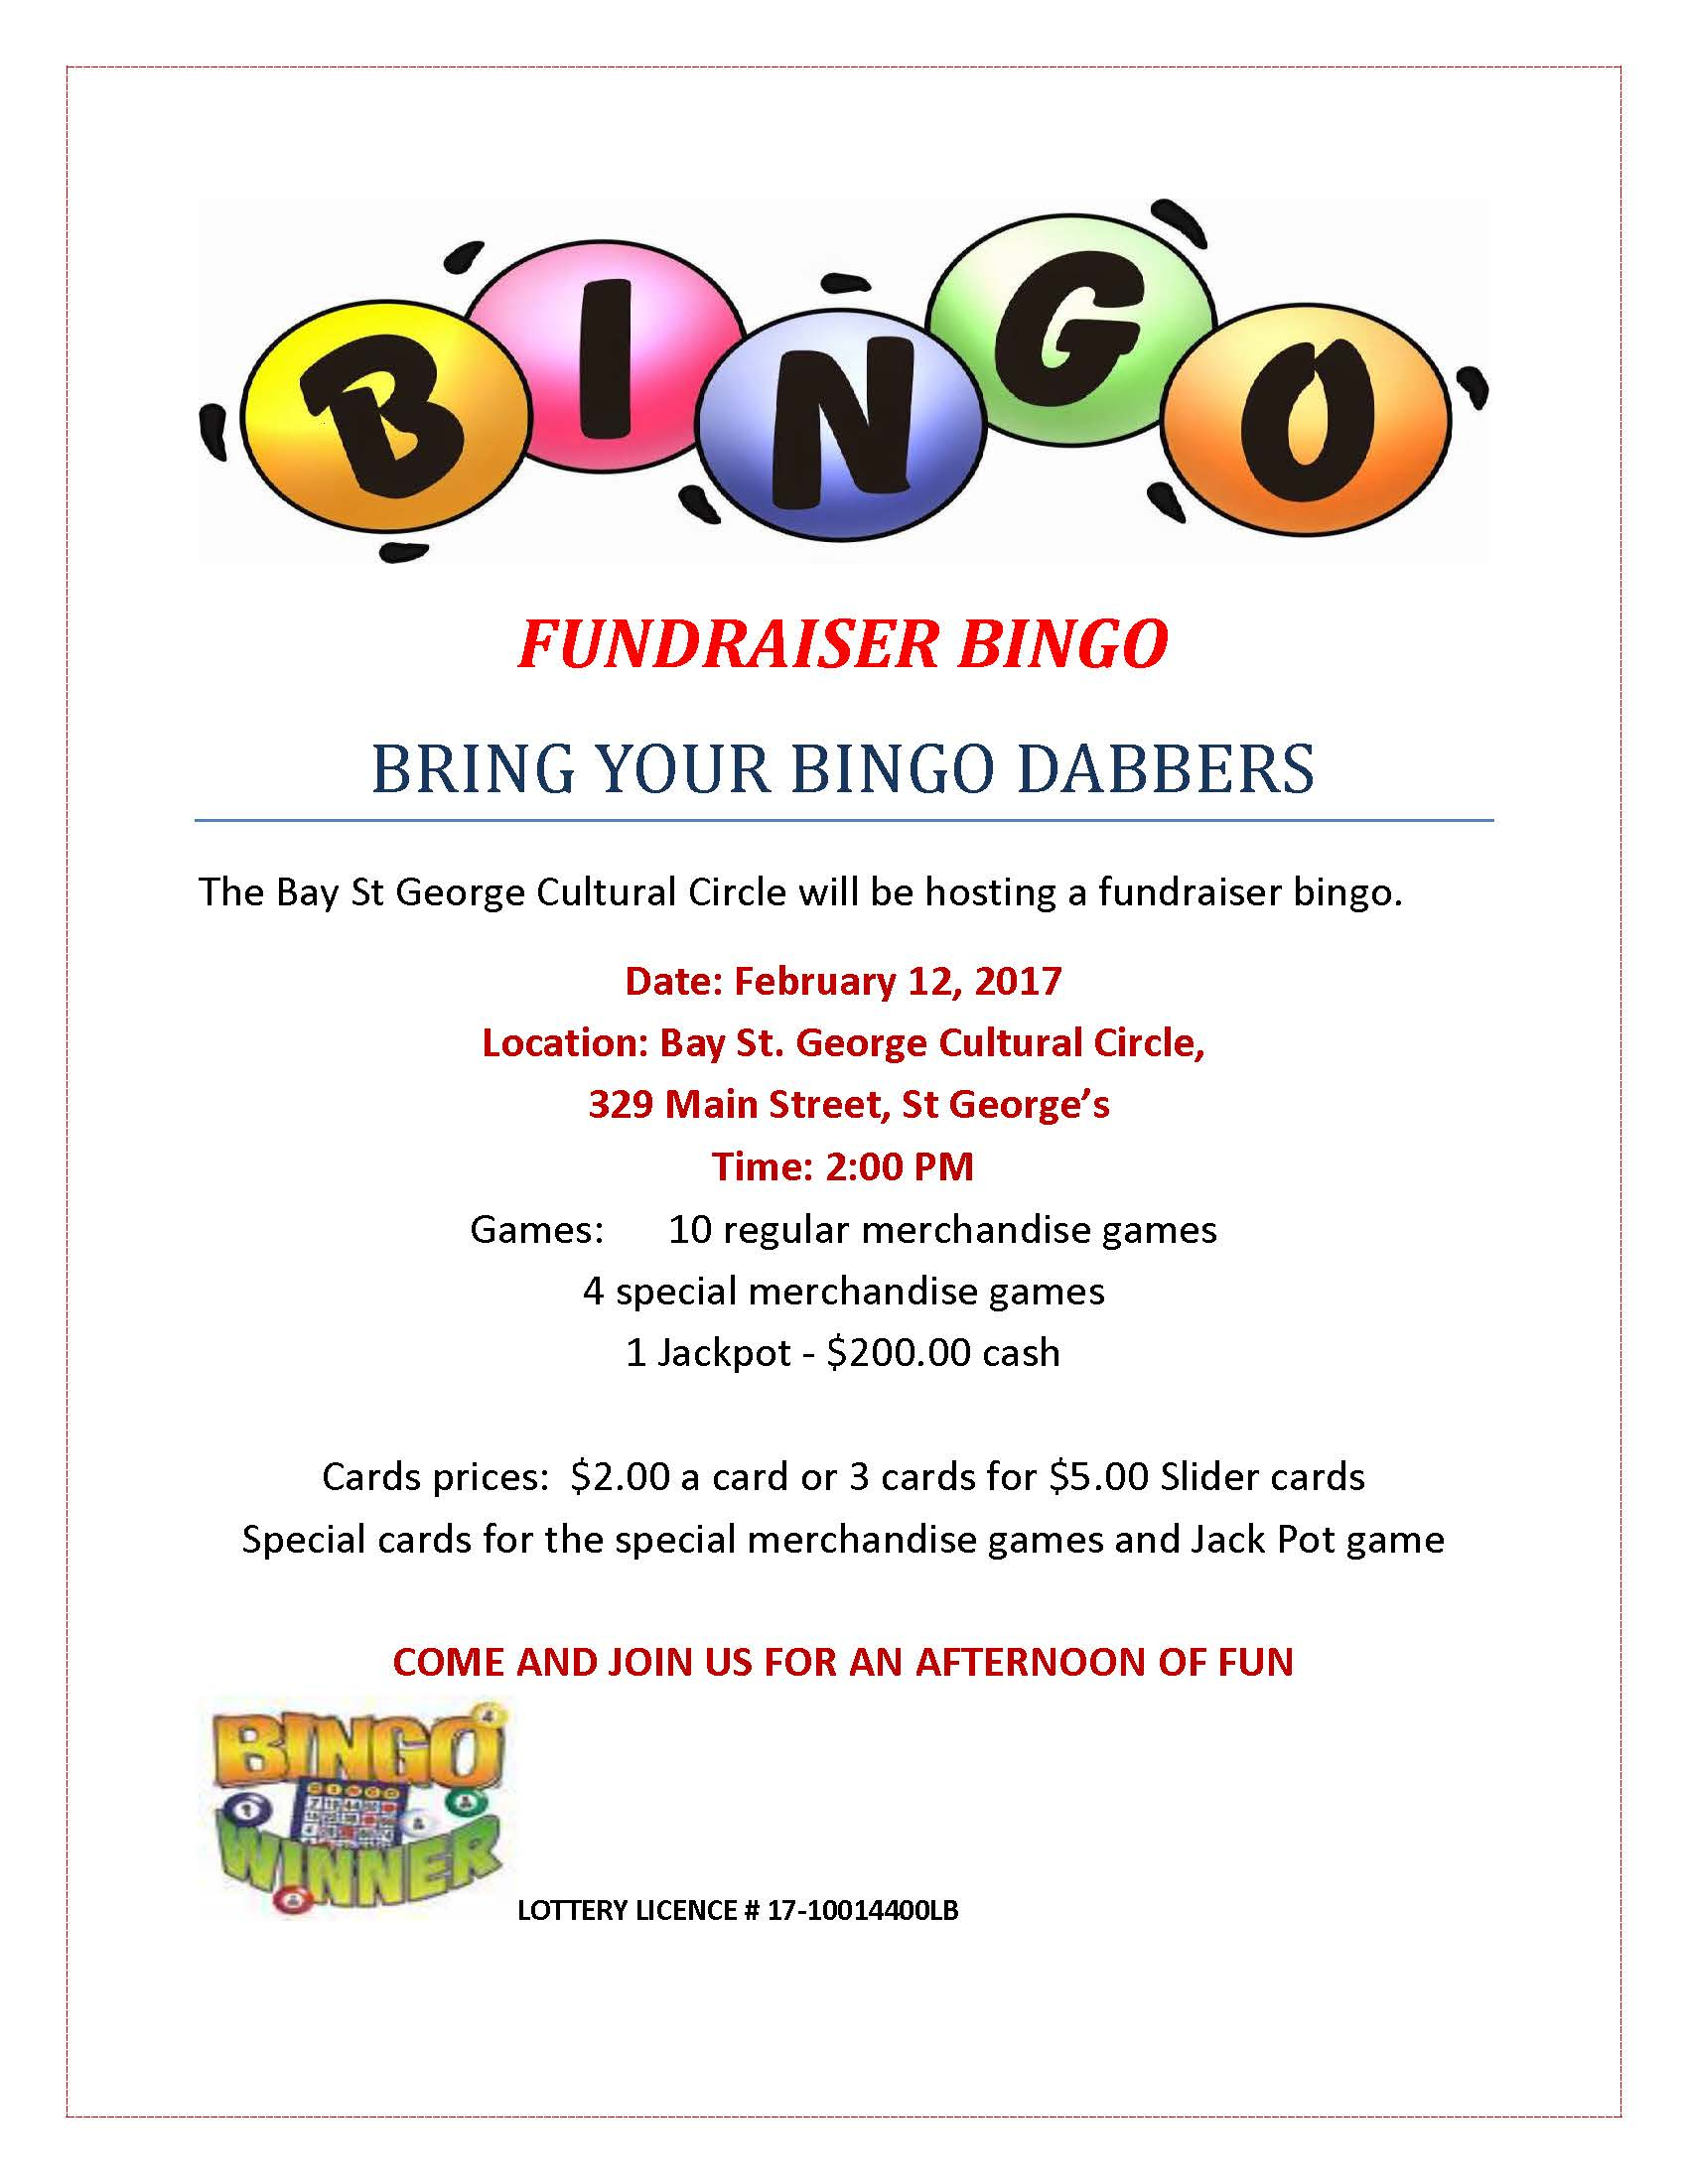 bingo fundraiser flyers mersn proforum co